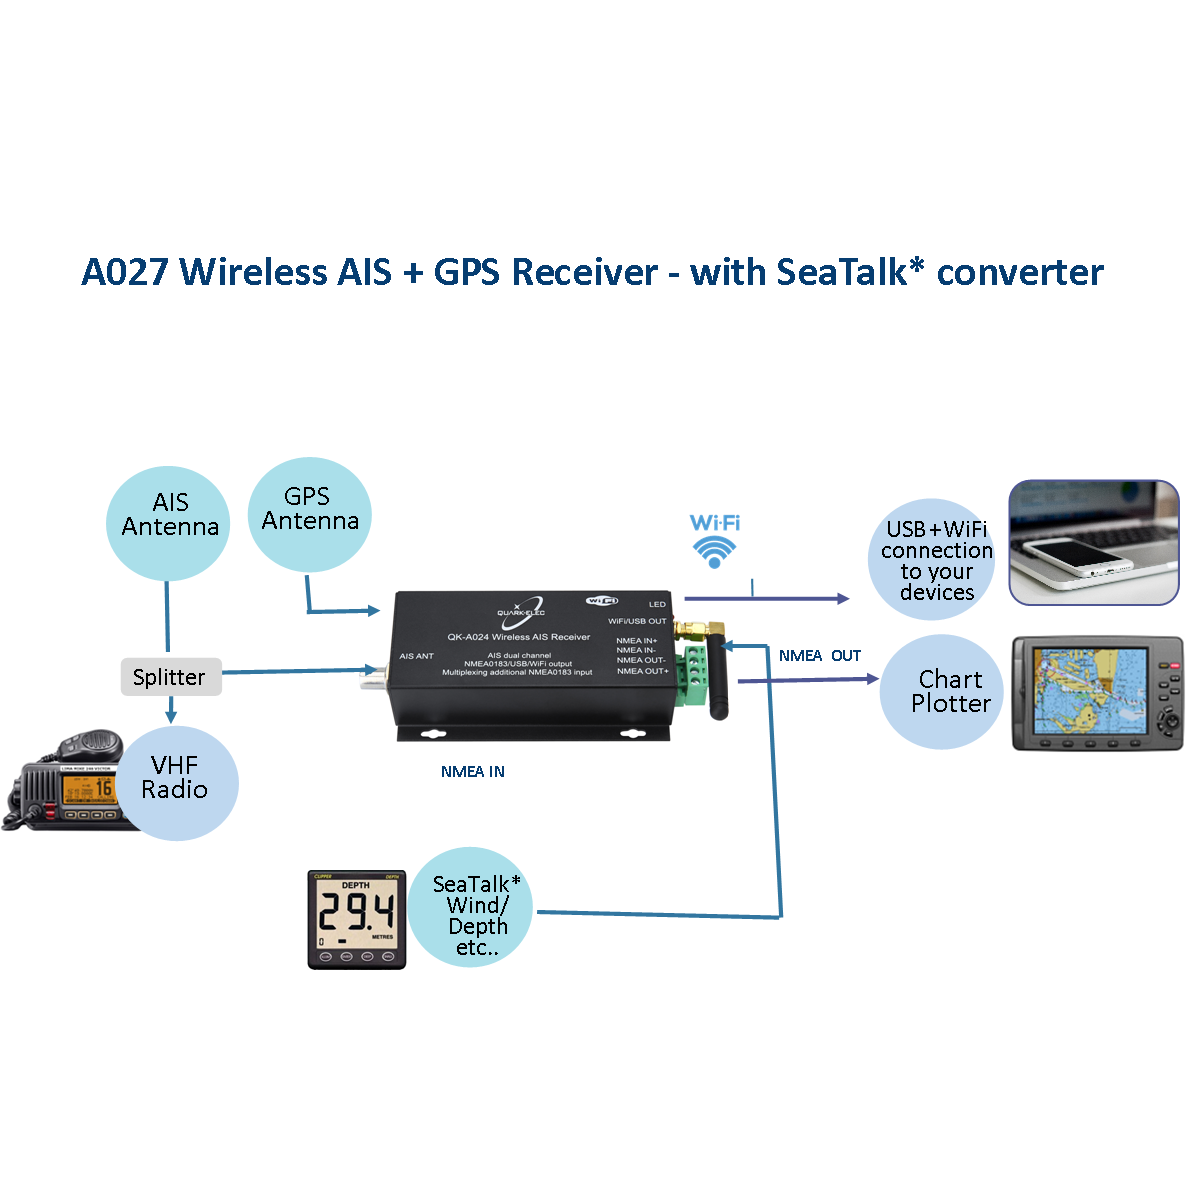 medium resolution of it can receive information from both ais frequencies simultaneously it includes an integrated gps module that can track up to 22 satellites